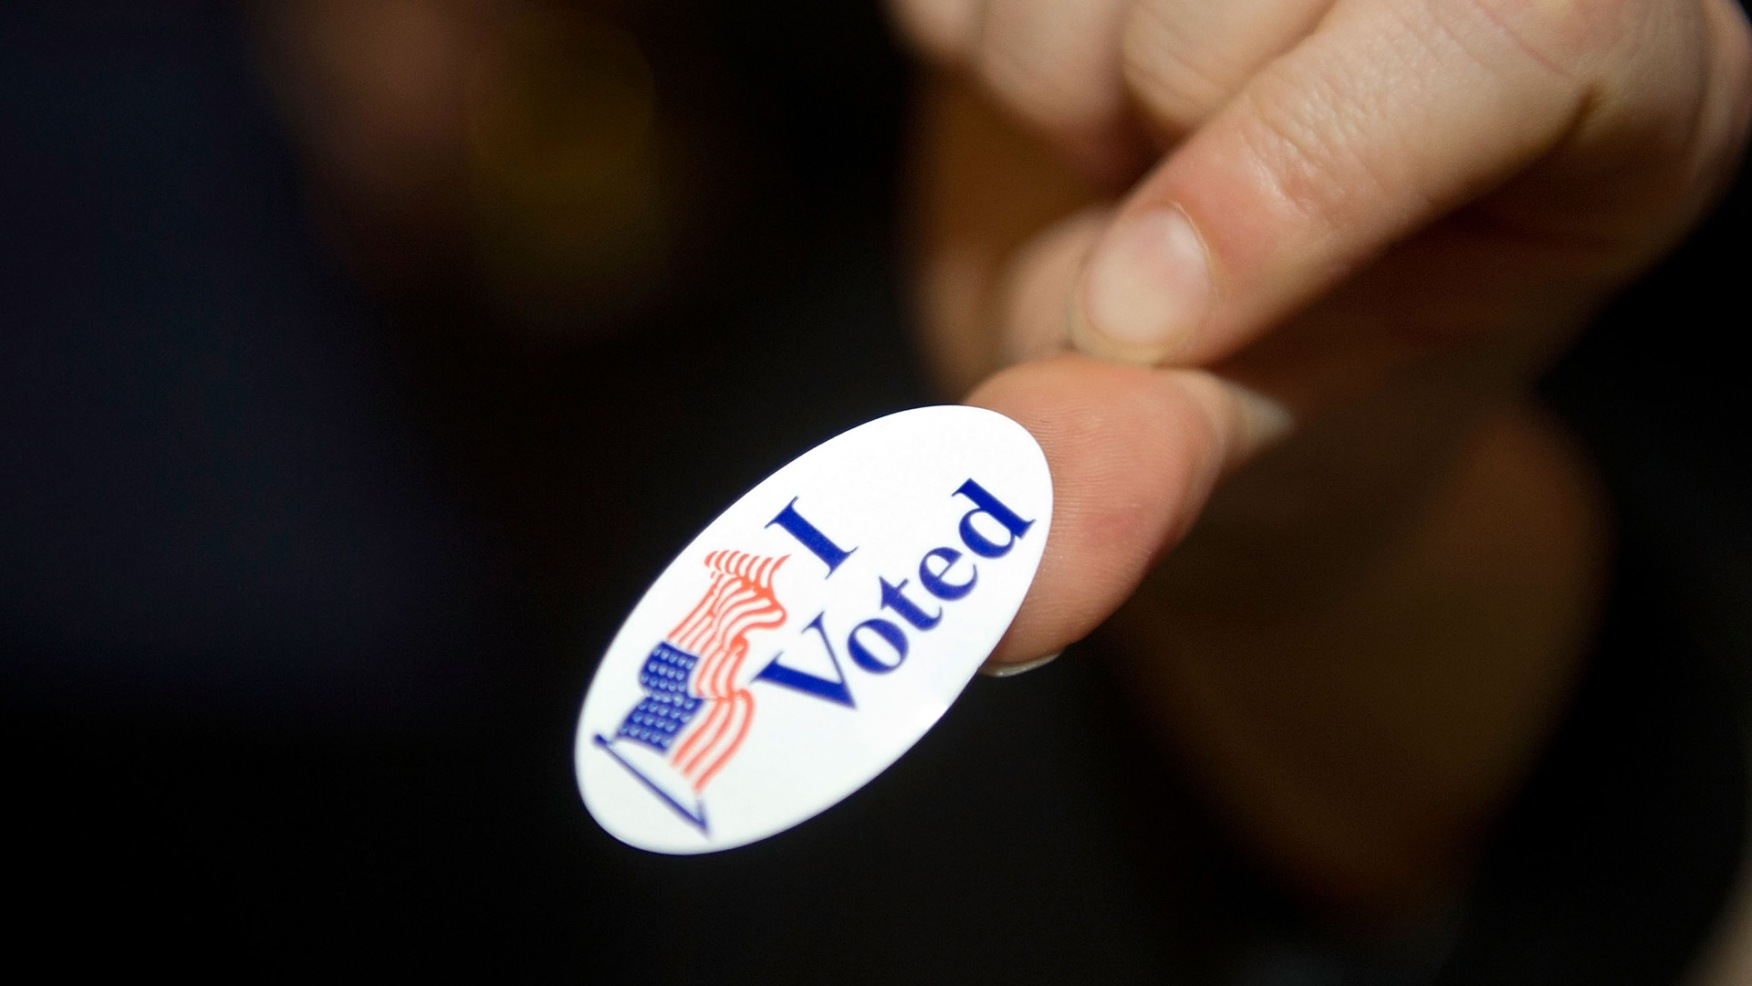 WSPA – South Carolina needs paid poll managers for general election